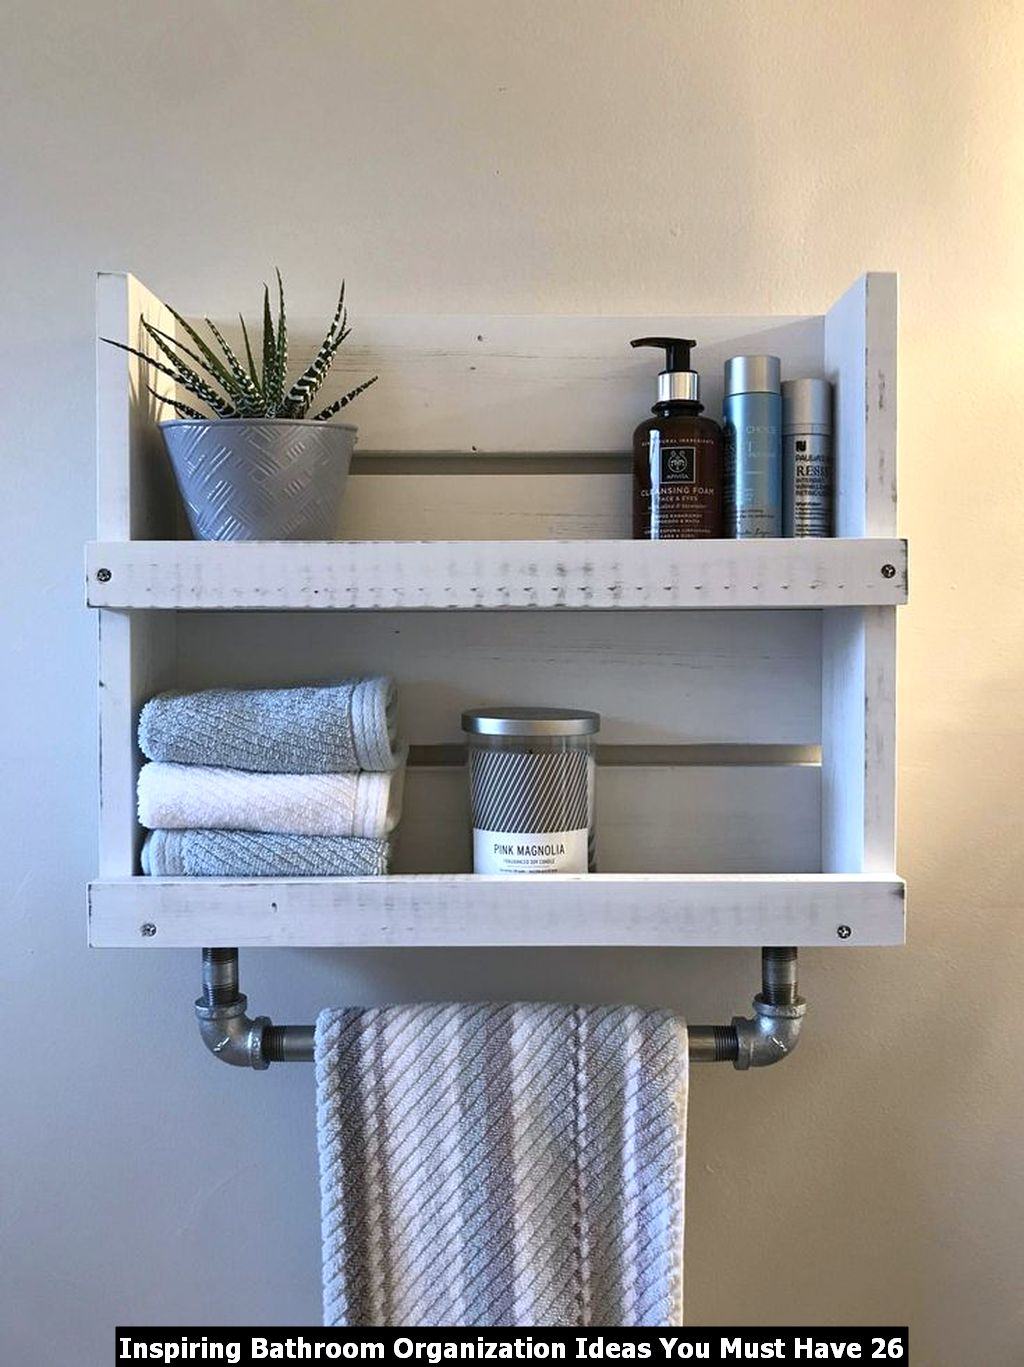 Inspiring Bathroom Organization Ideas You Must Have 26